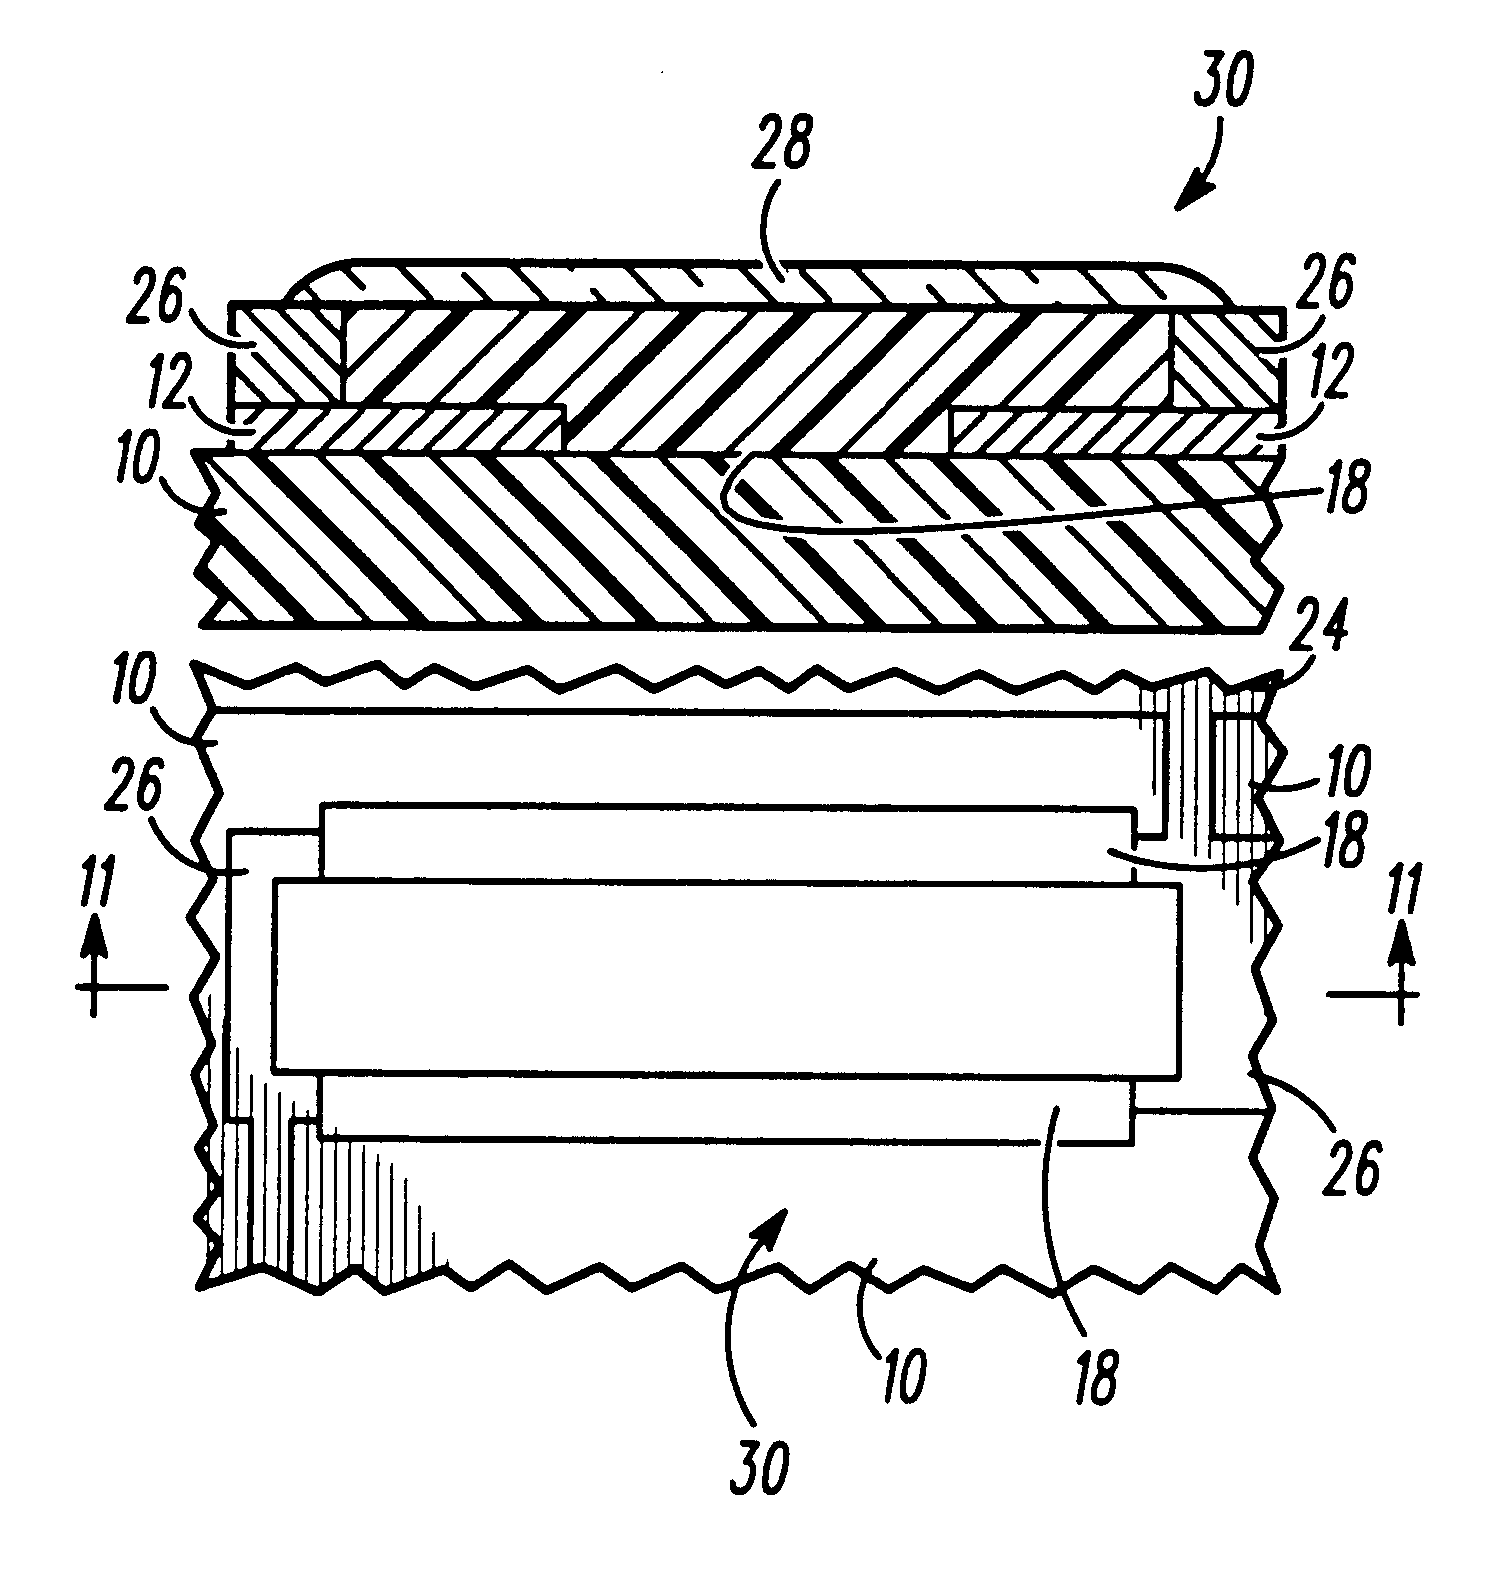 patent us6507993 - polymer thick-film resistor printed on planar circuit board surface